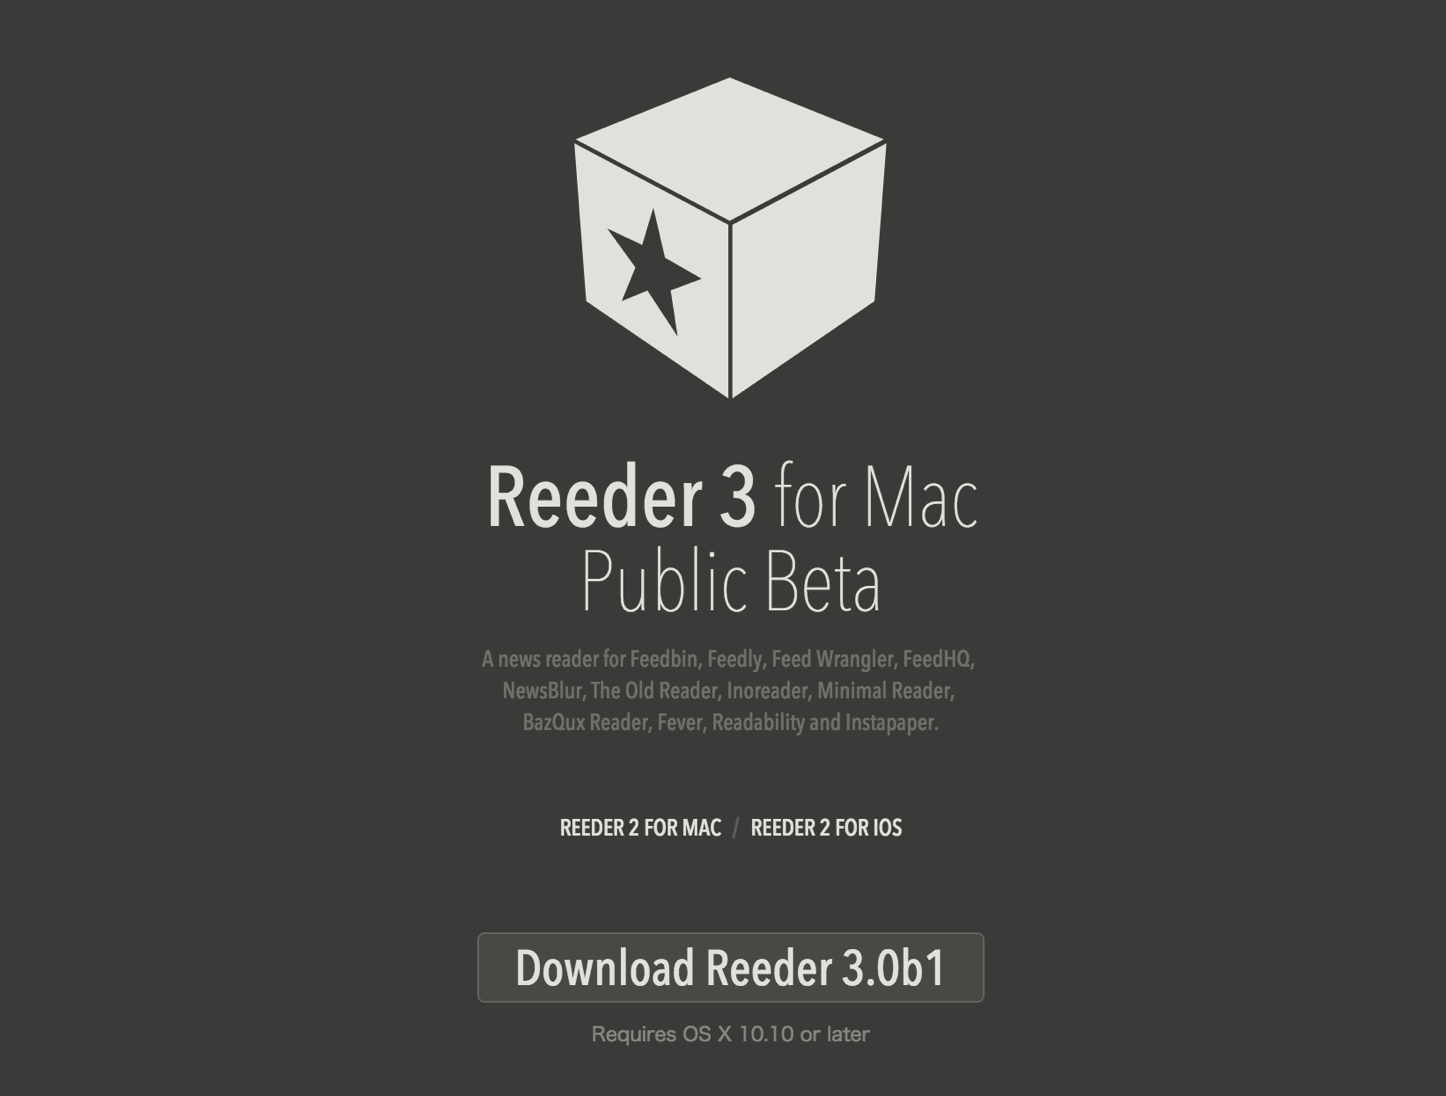 Reeder 3 for Mac Public Beta